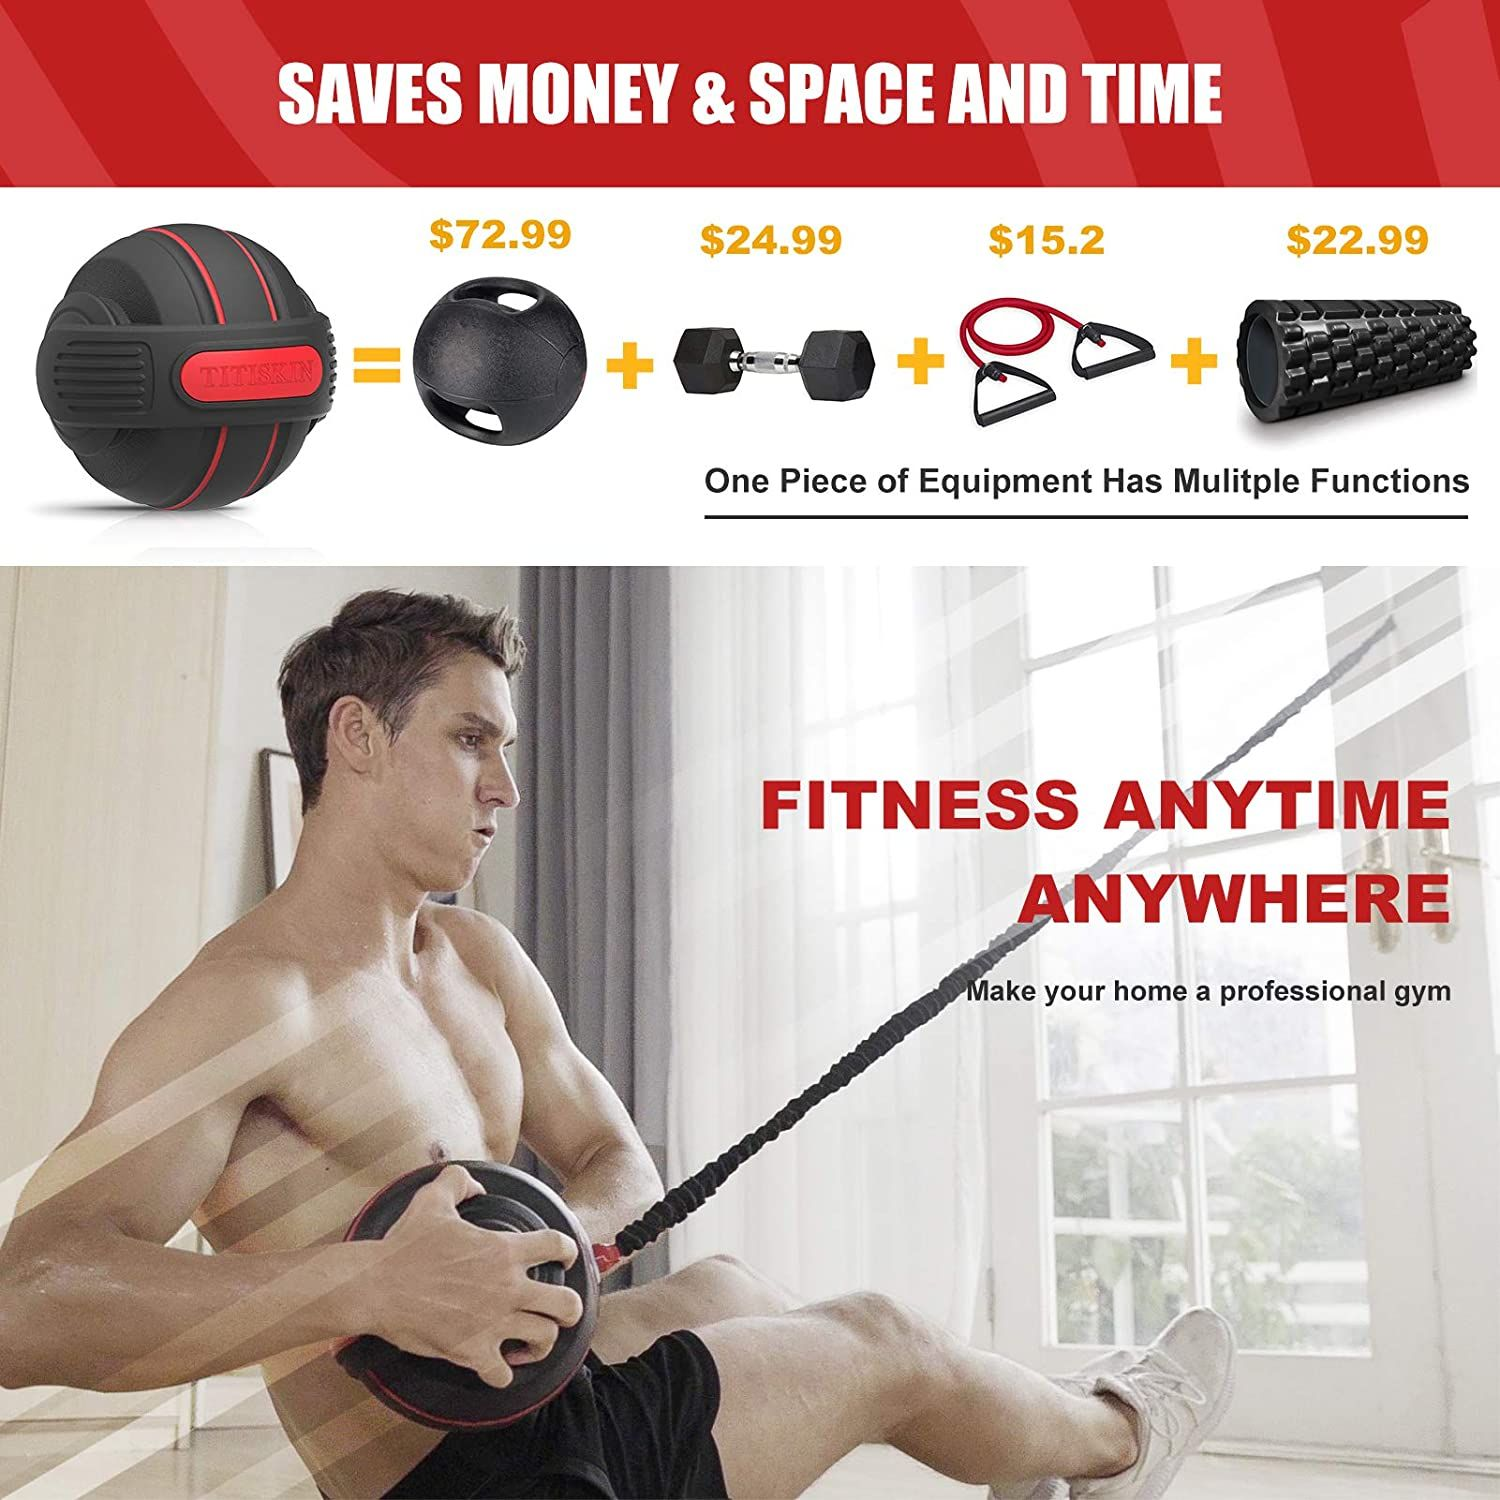 20LBS resistance rope Details about  /TITISKIN All-in ONE Home Gym Workout Equipment with